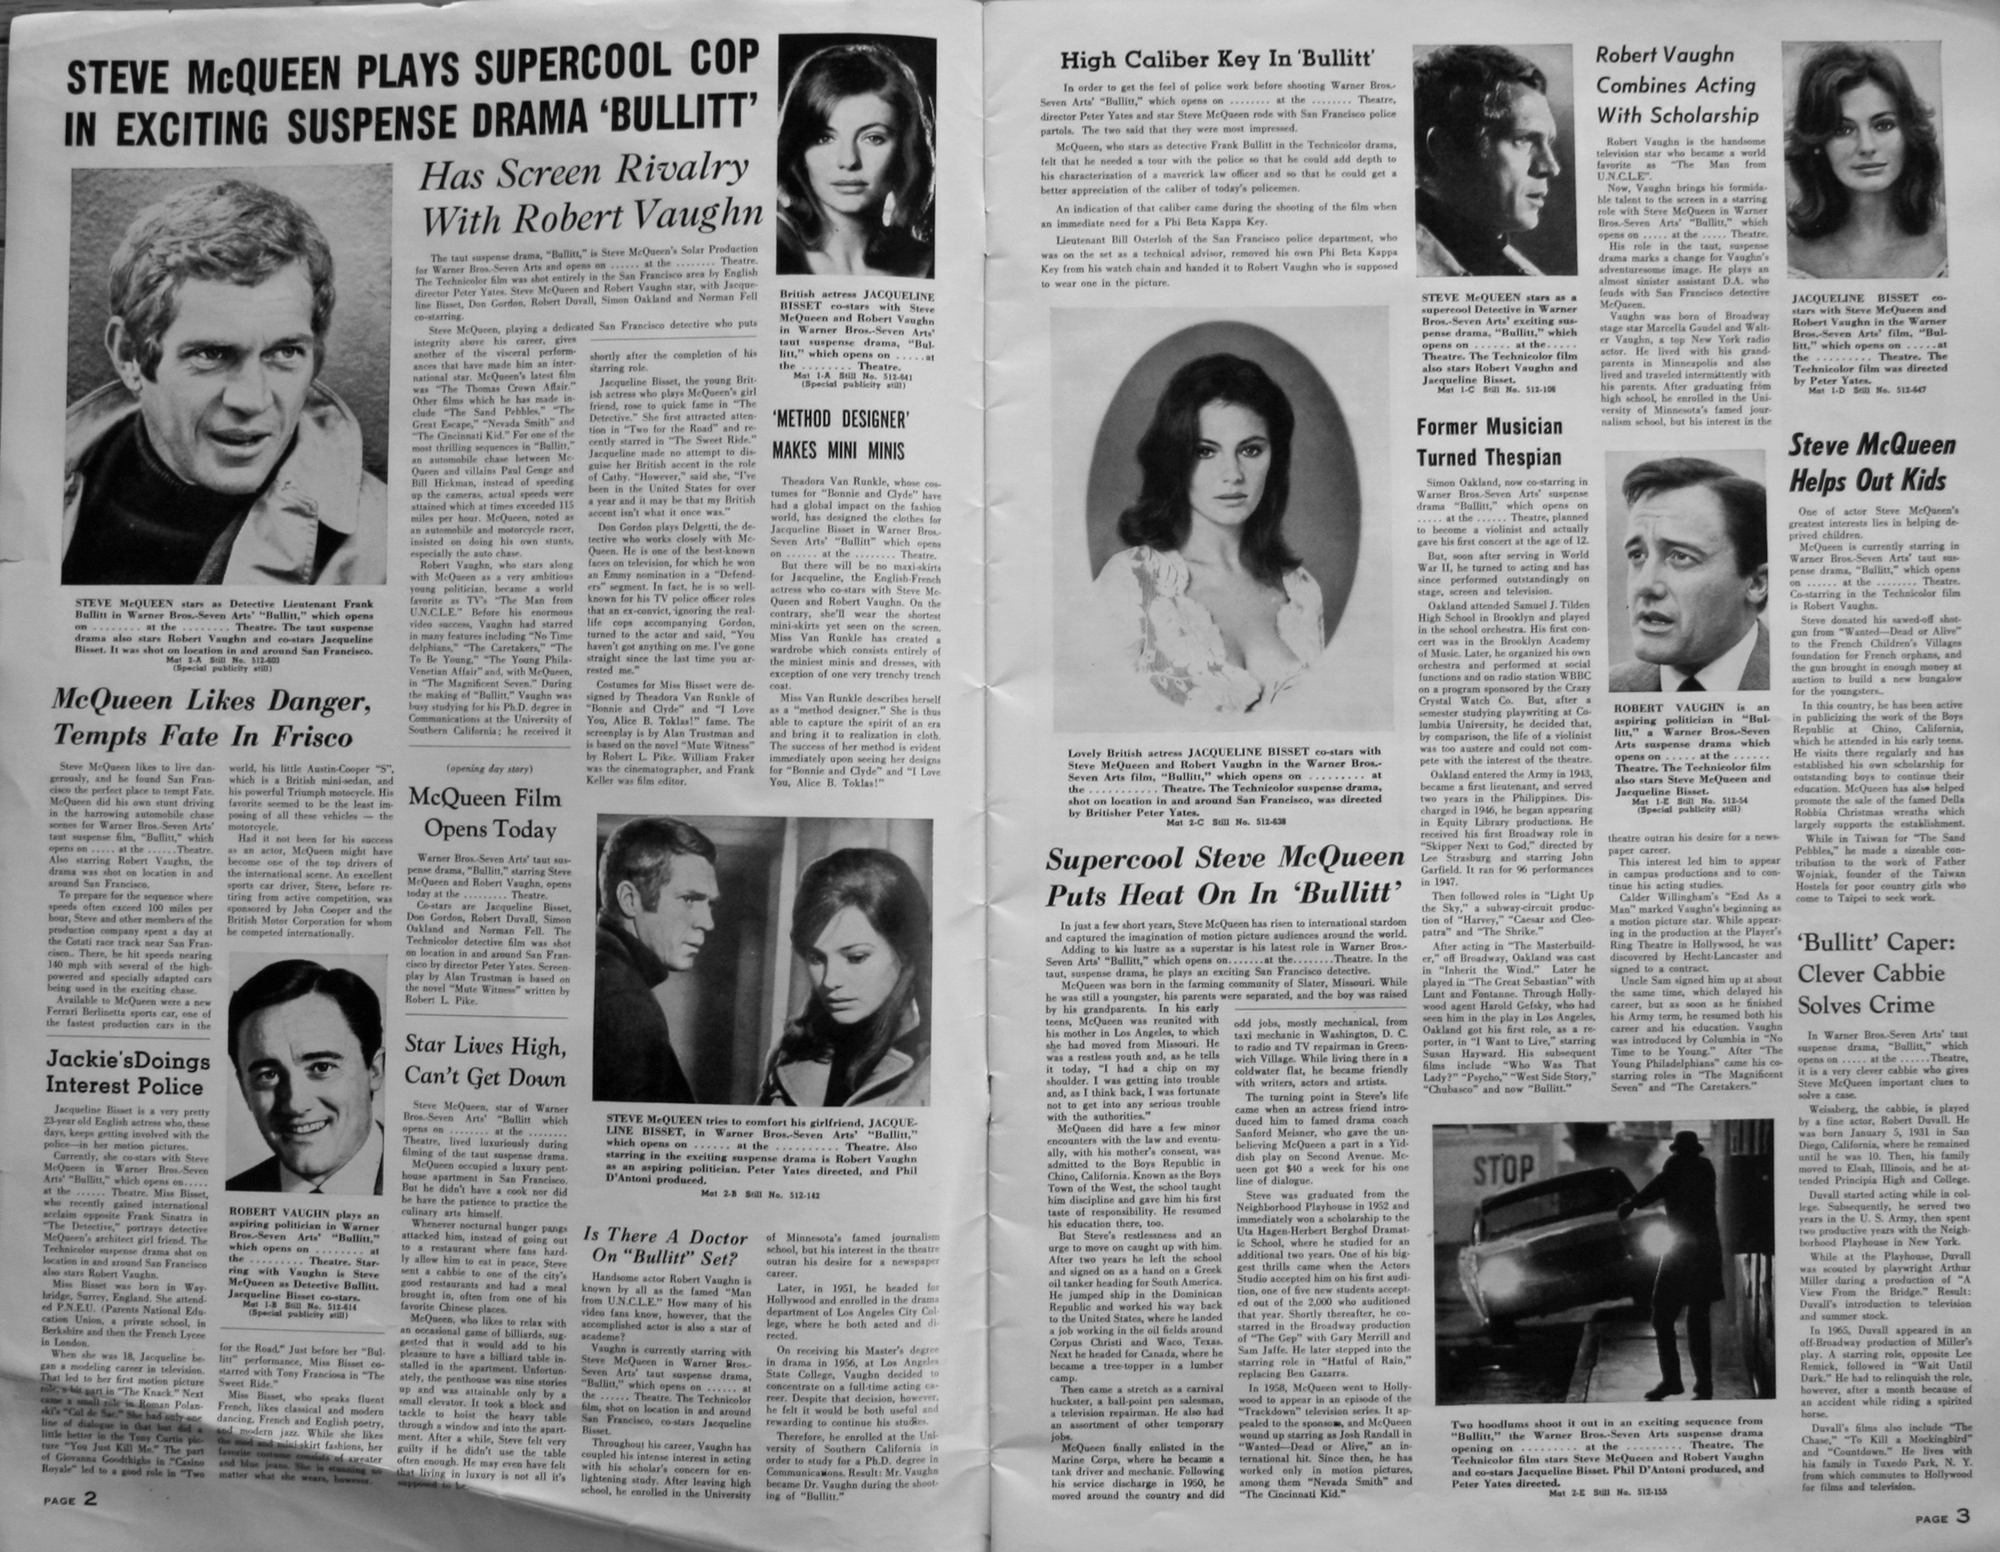 These pages are from the  Warner Bros. Seven Arts Pressbook  . The book went to theaters so they could have material to promote  Bullitt .  Property Frank Marranca